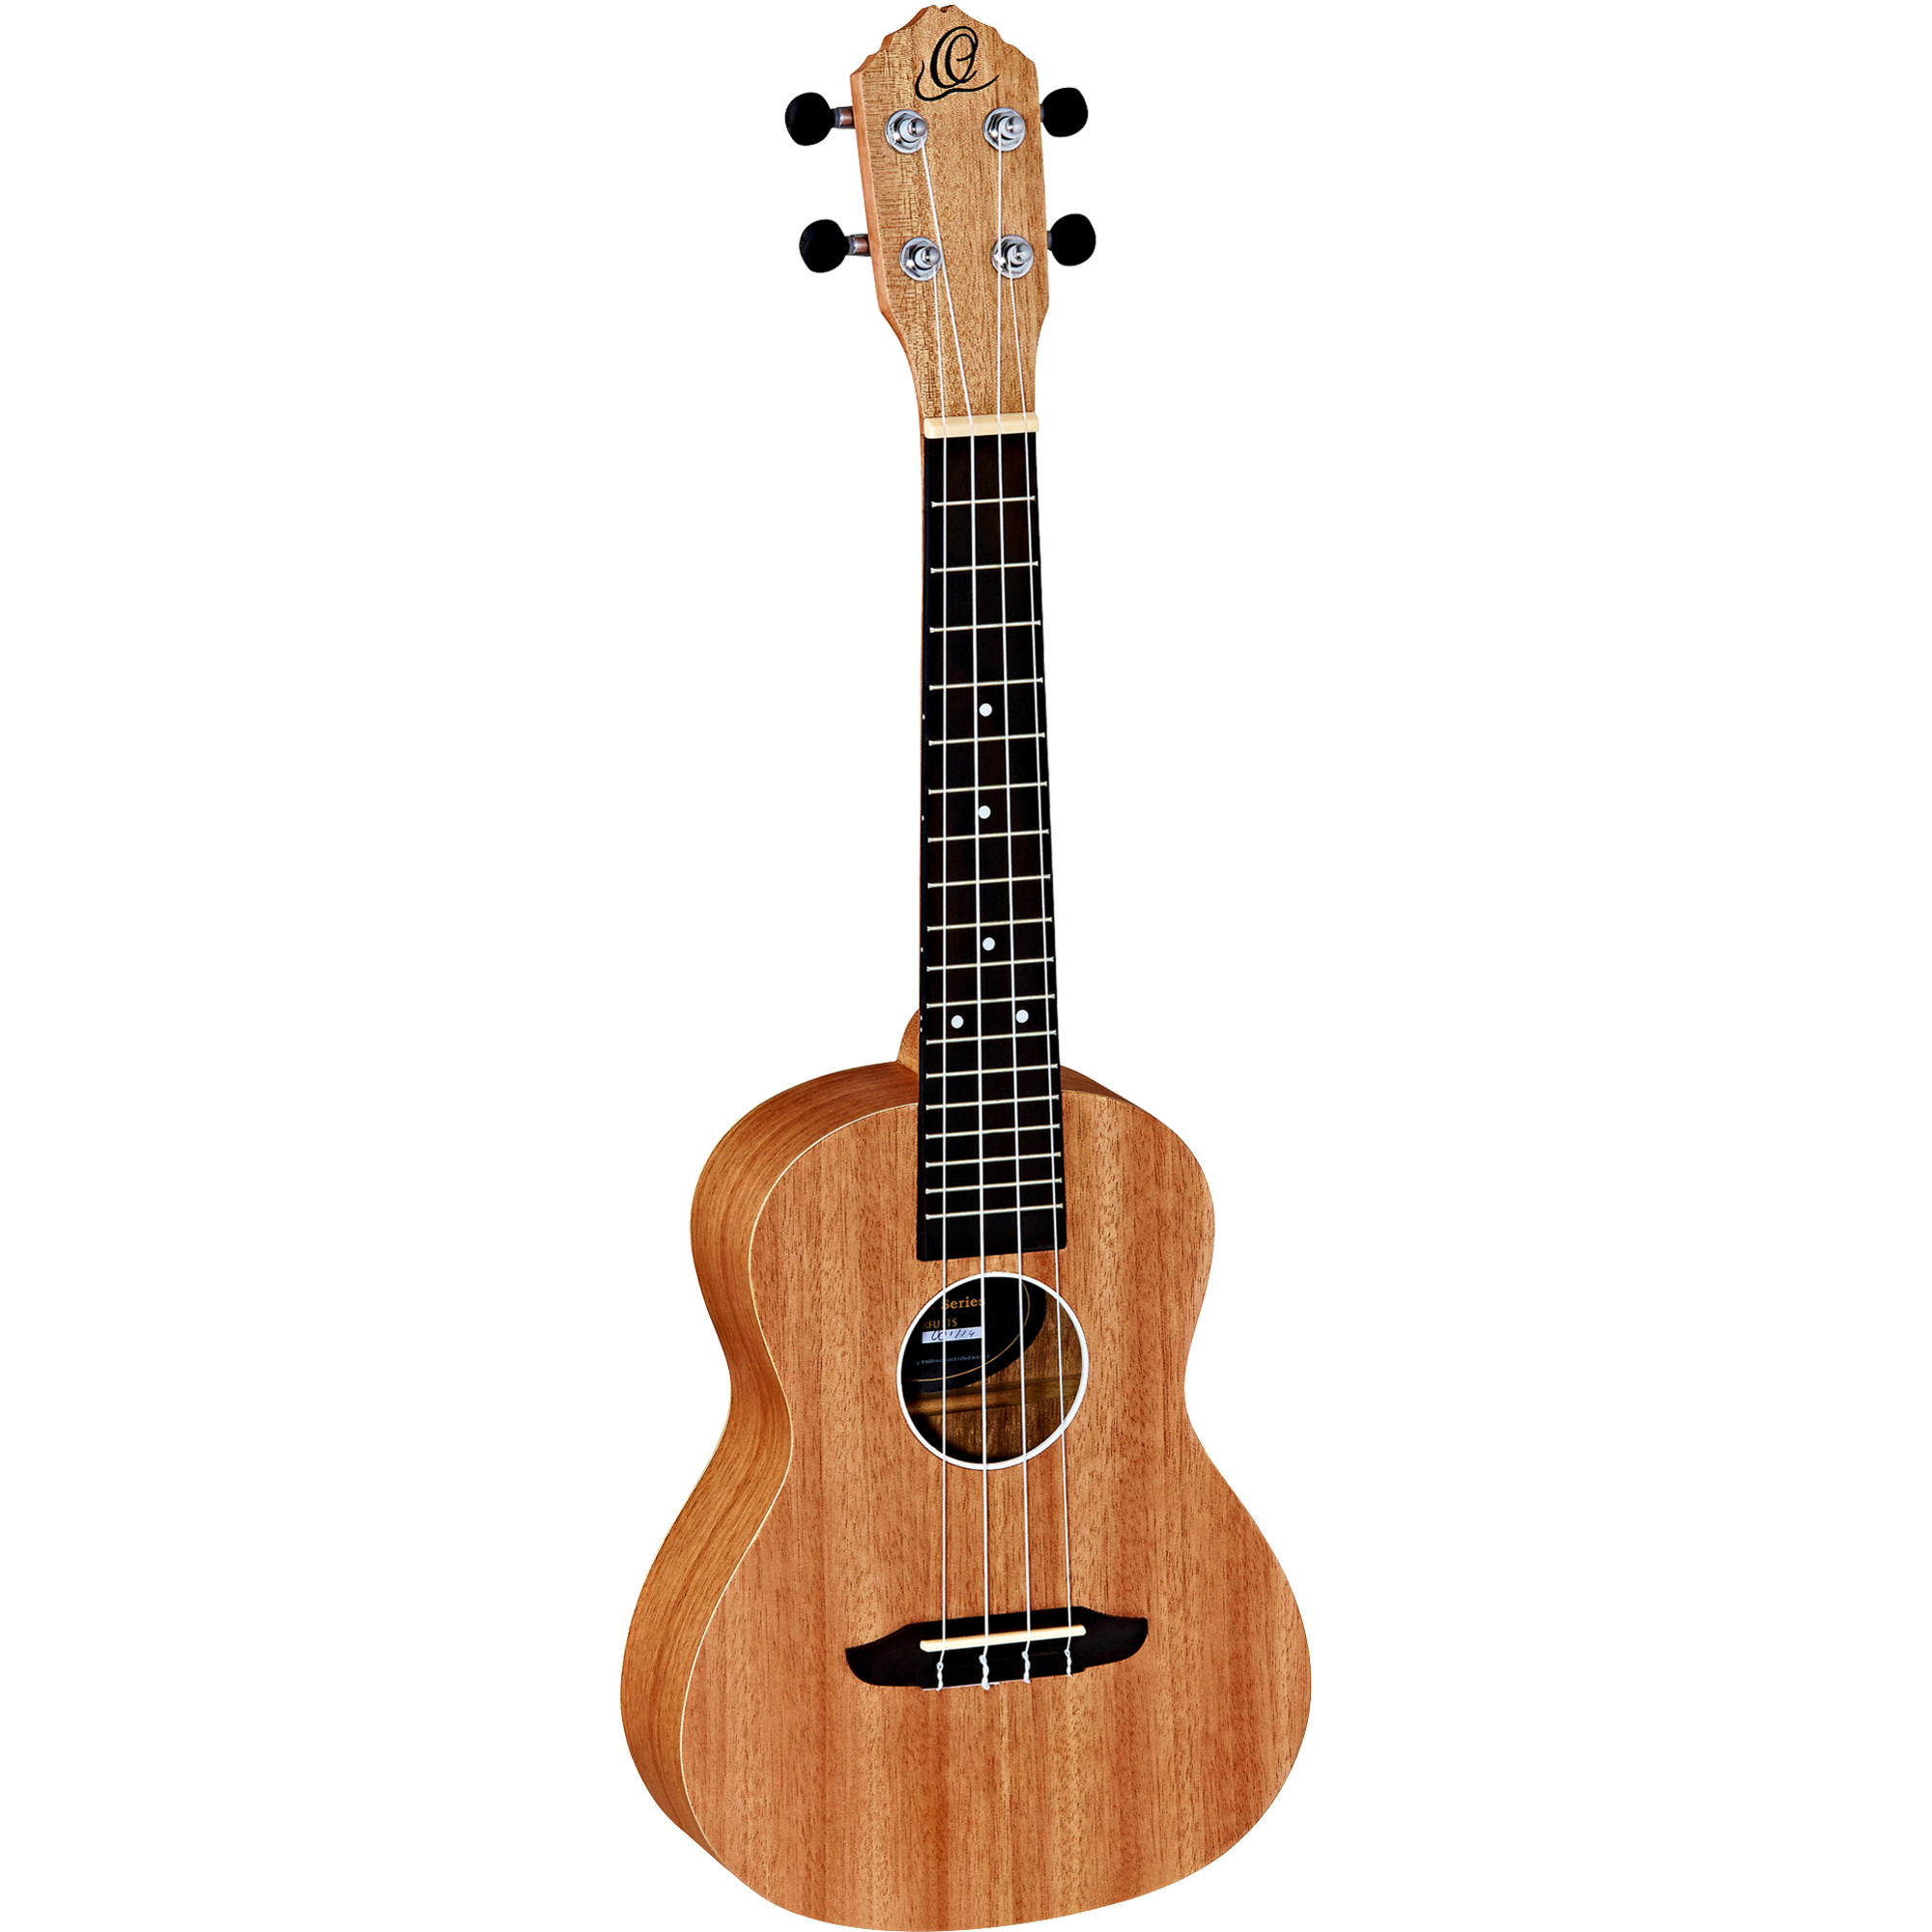 Ortega RFU11S concert ukulele (natural), with gig bag